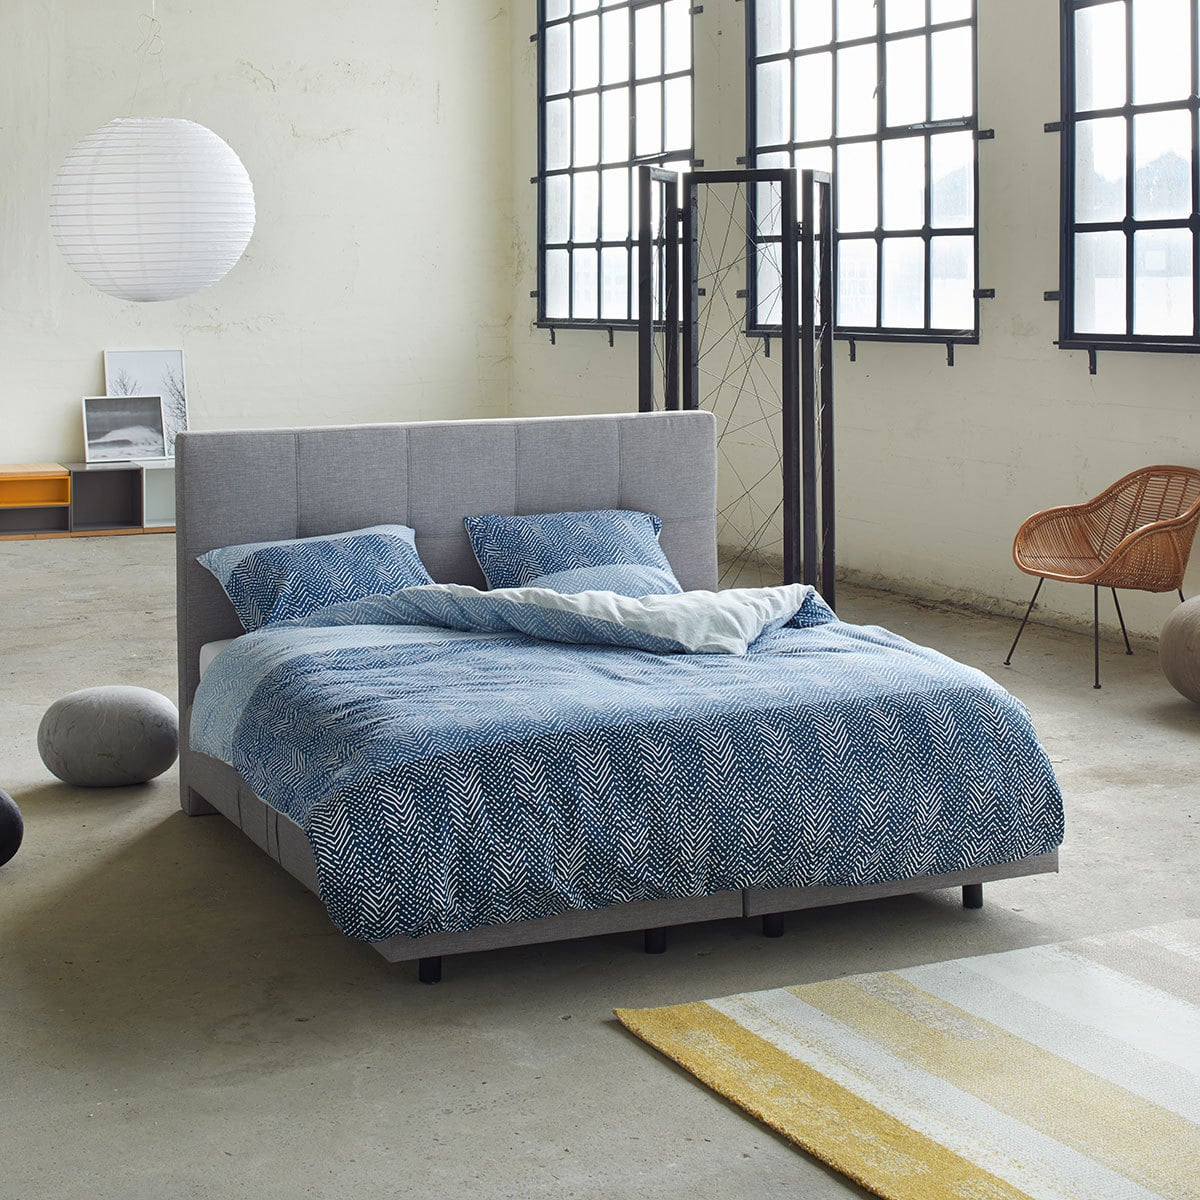 esprit flanell bettw sche tamo blue g nstig online kaufen bei bettwaren shop. Black Bedroom Furniture Sets. Home Design Ideas